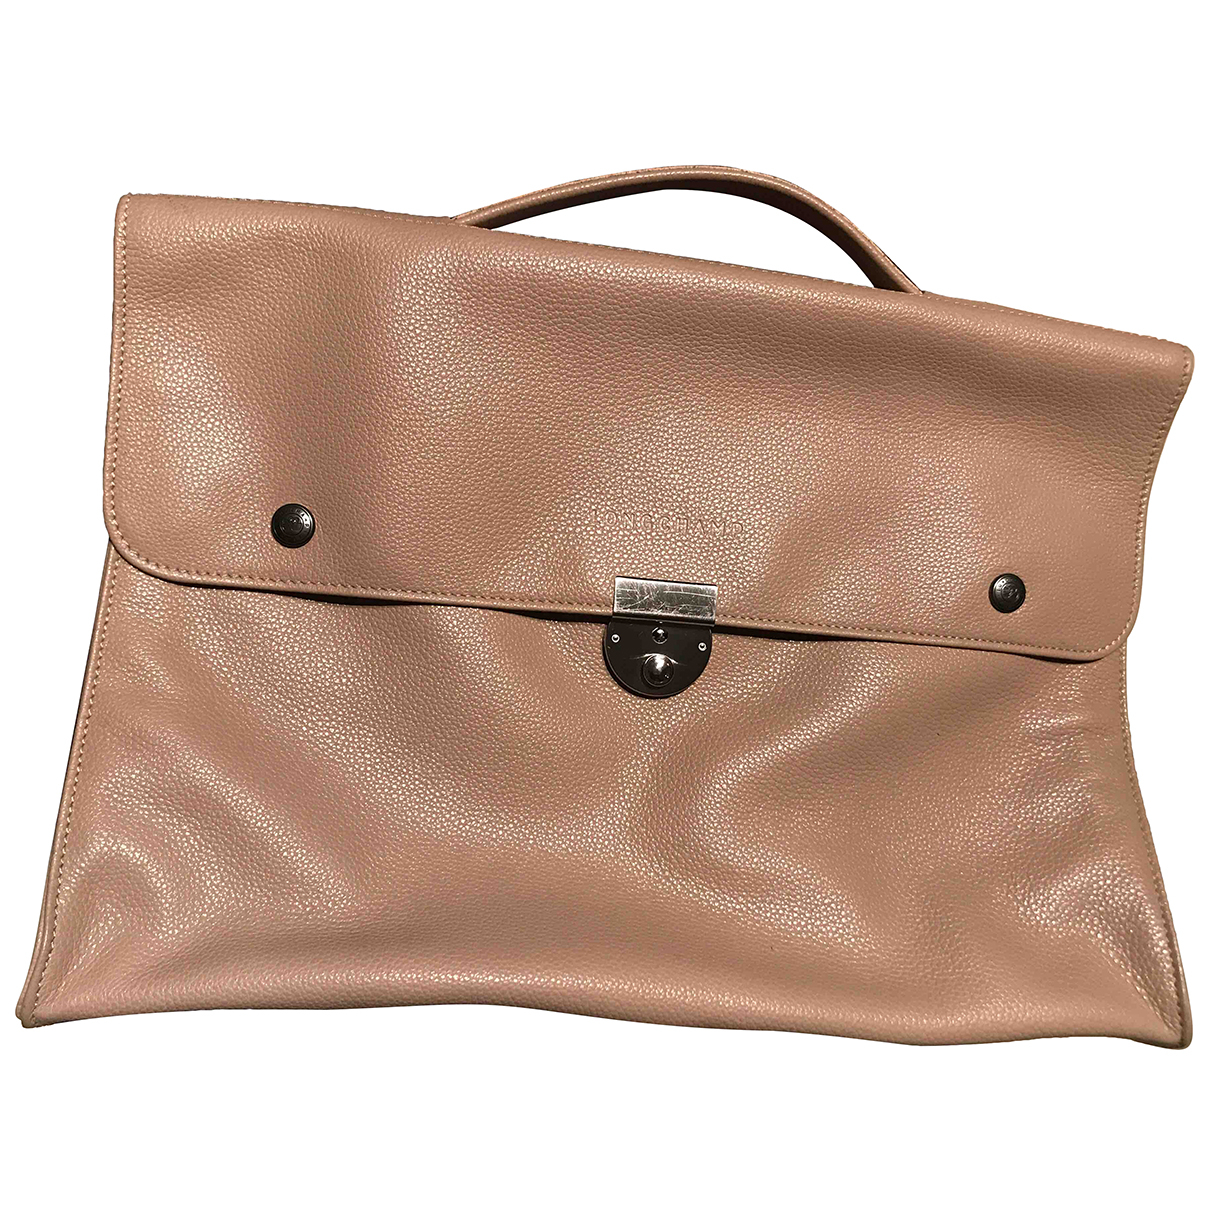 Longchamp N Beige Leather bag for Men N